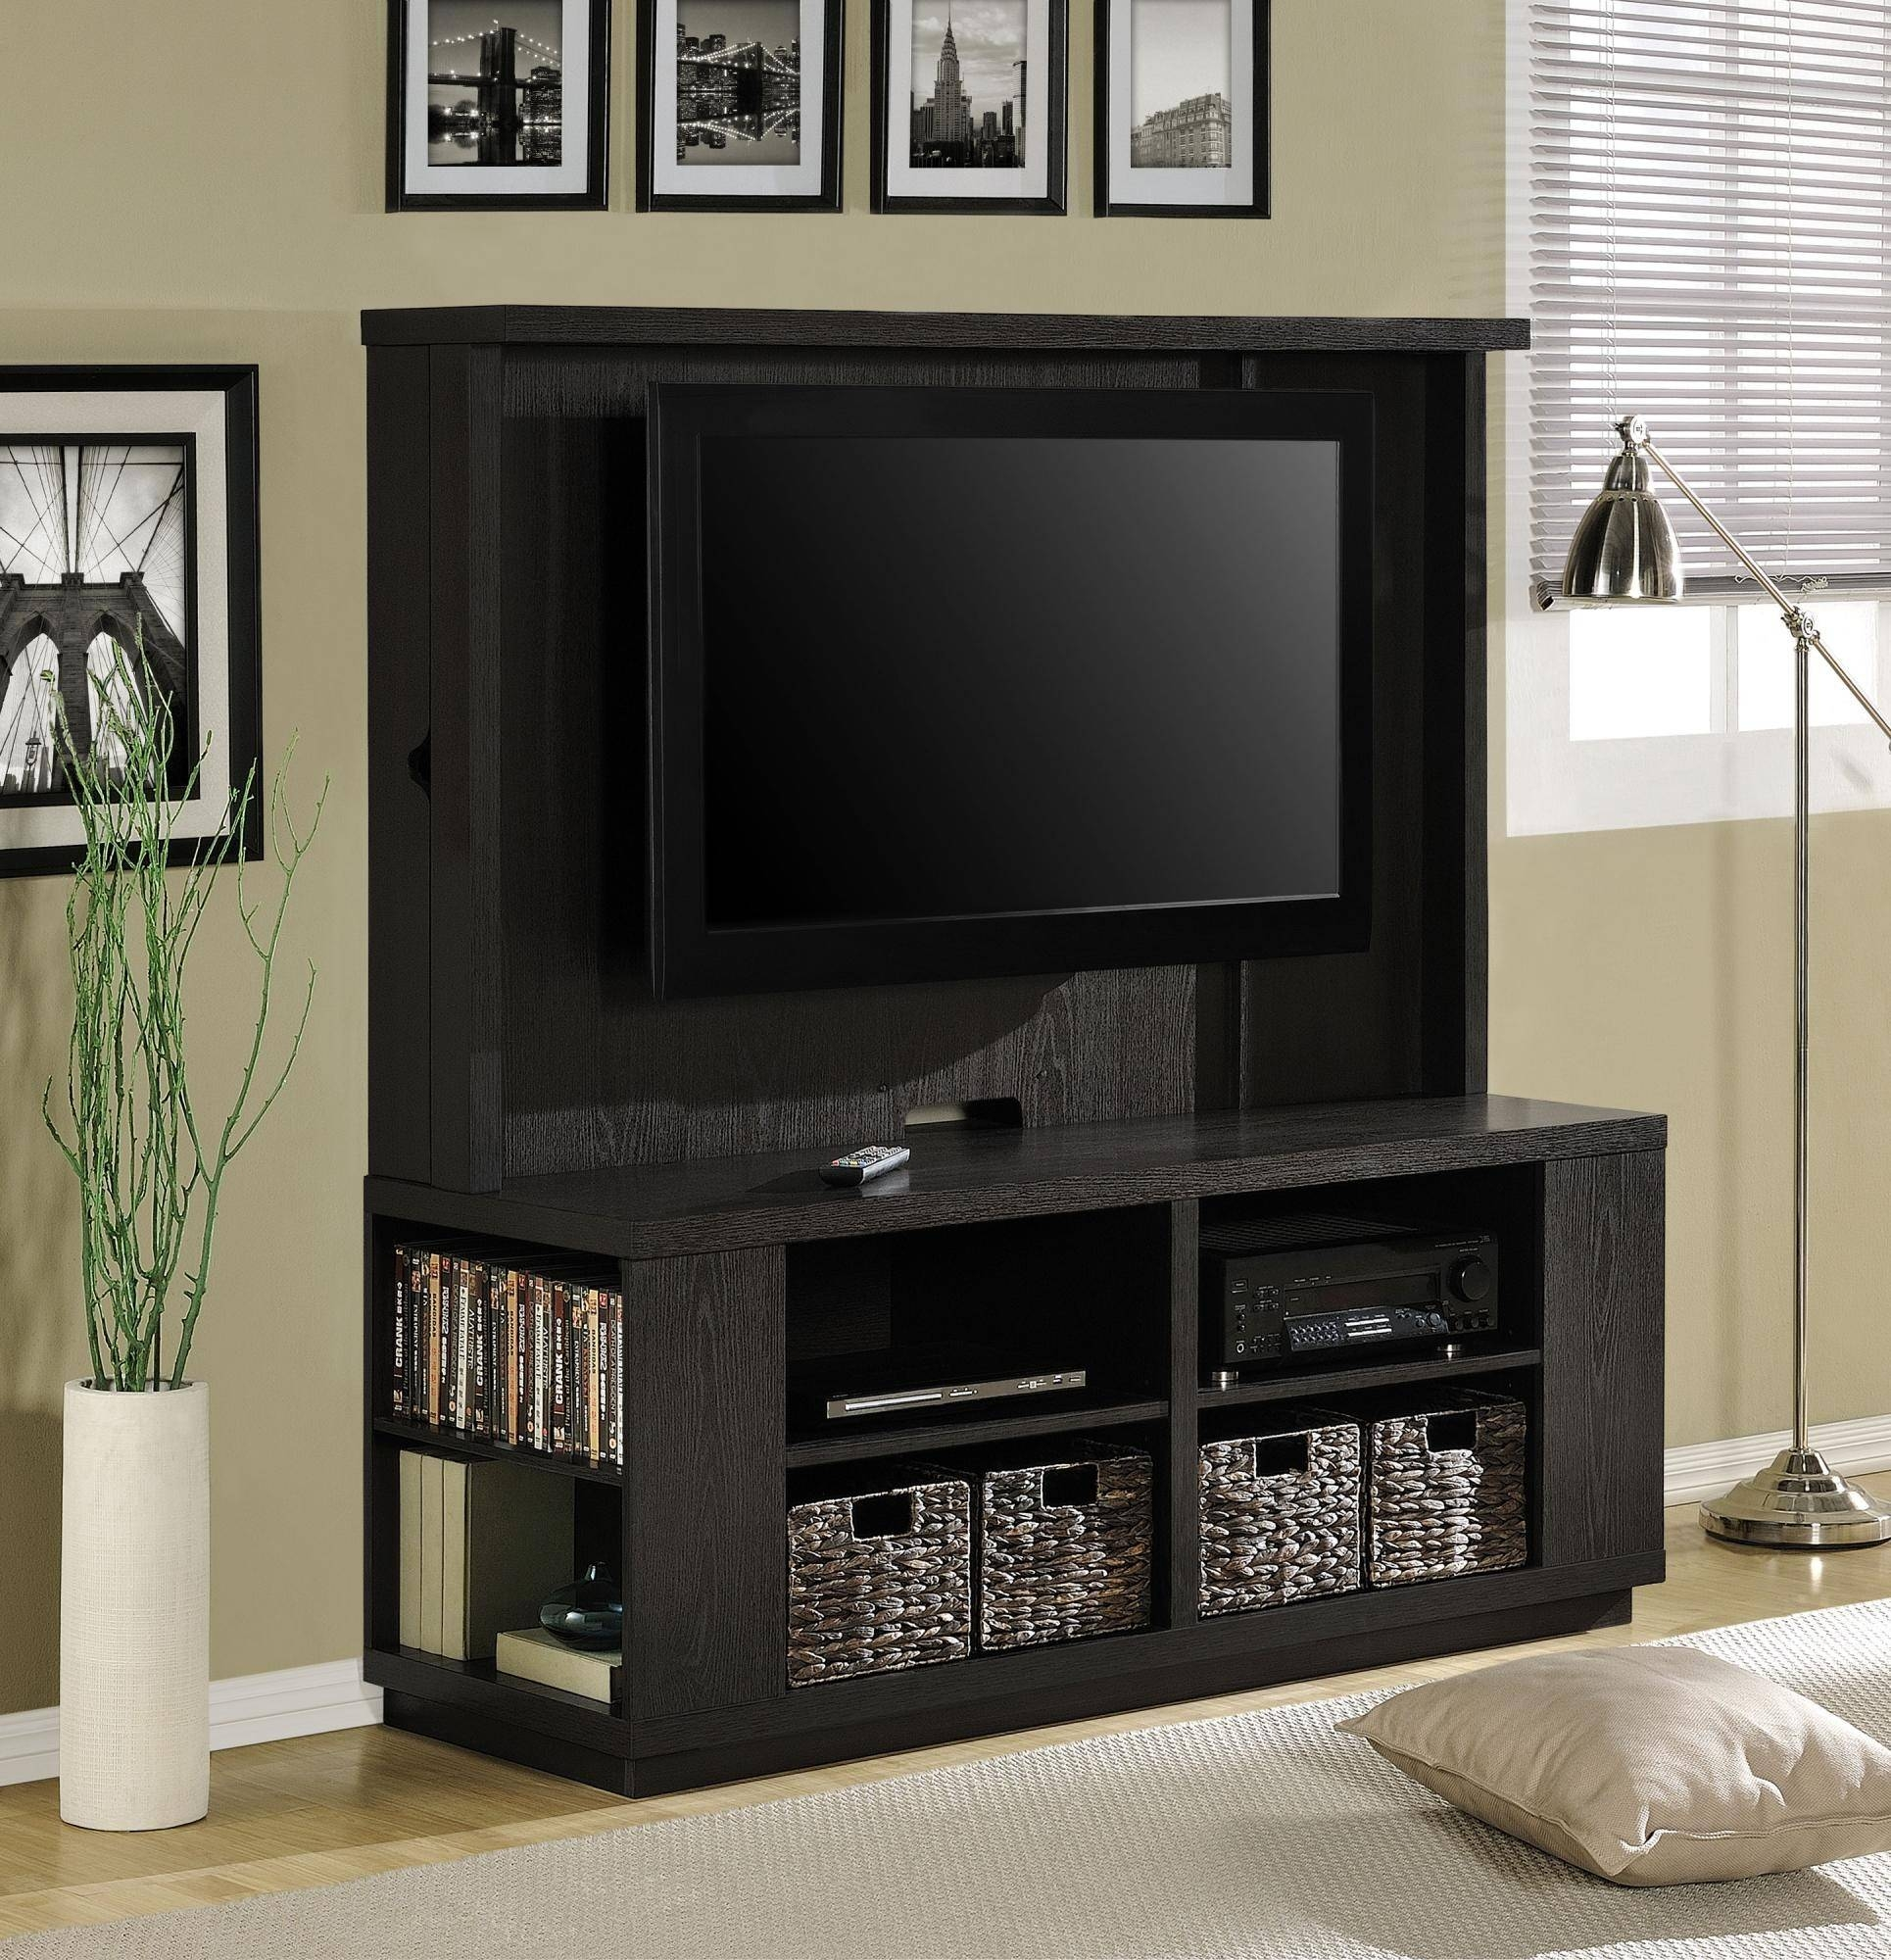 2018 Best Of Tv Stands With Storage Baskets